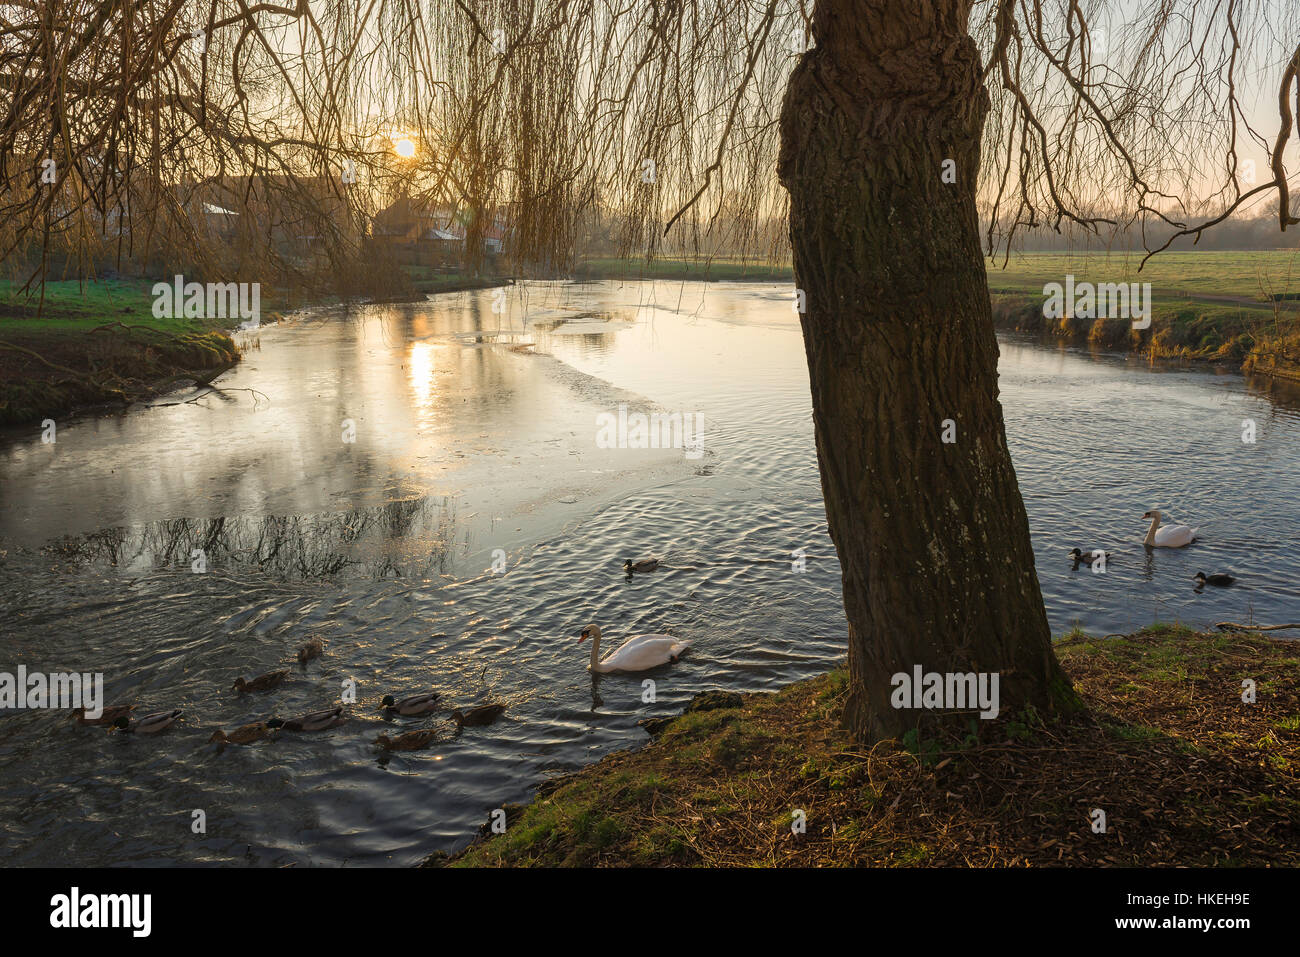 Sudbury Suffolk, winter view of the River Stour surrounded by a water meadow near  the town of Sudbury in Suffolk, - Stock Image